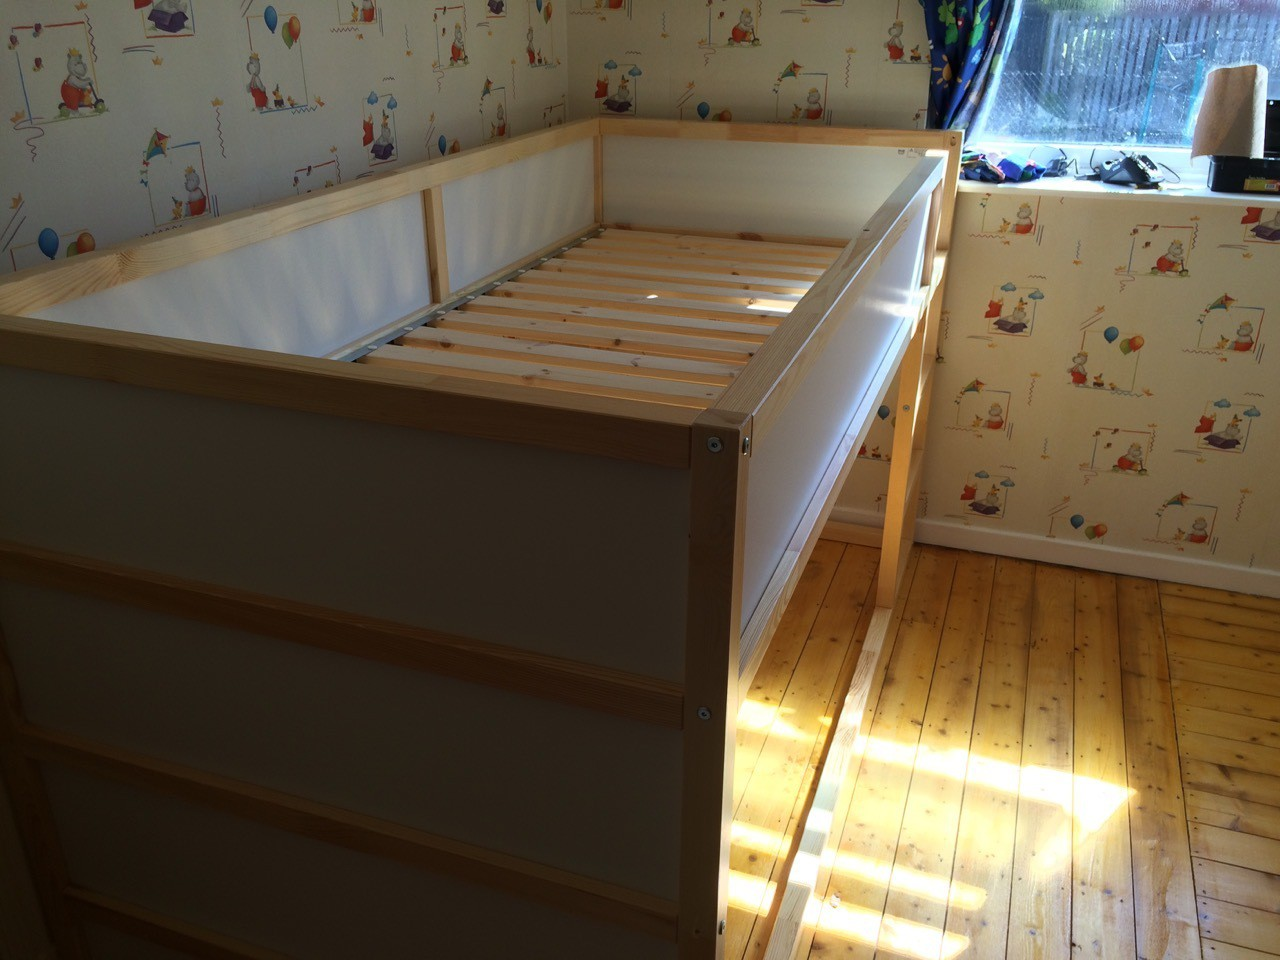 Ikea Toddler Bed Ikea Toddler Car Bed Kids Beds Ikea In